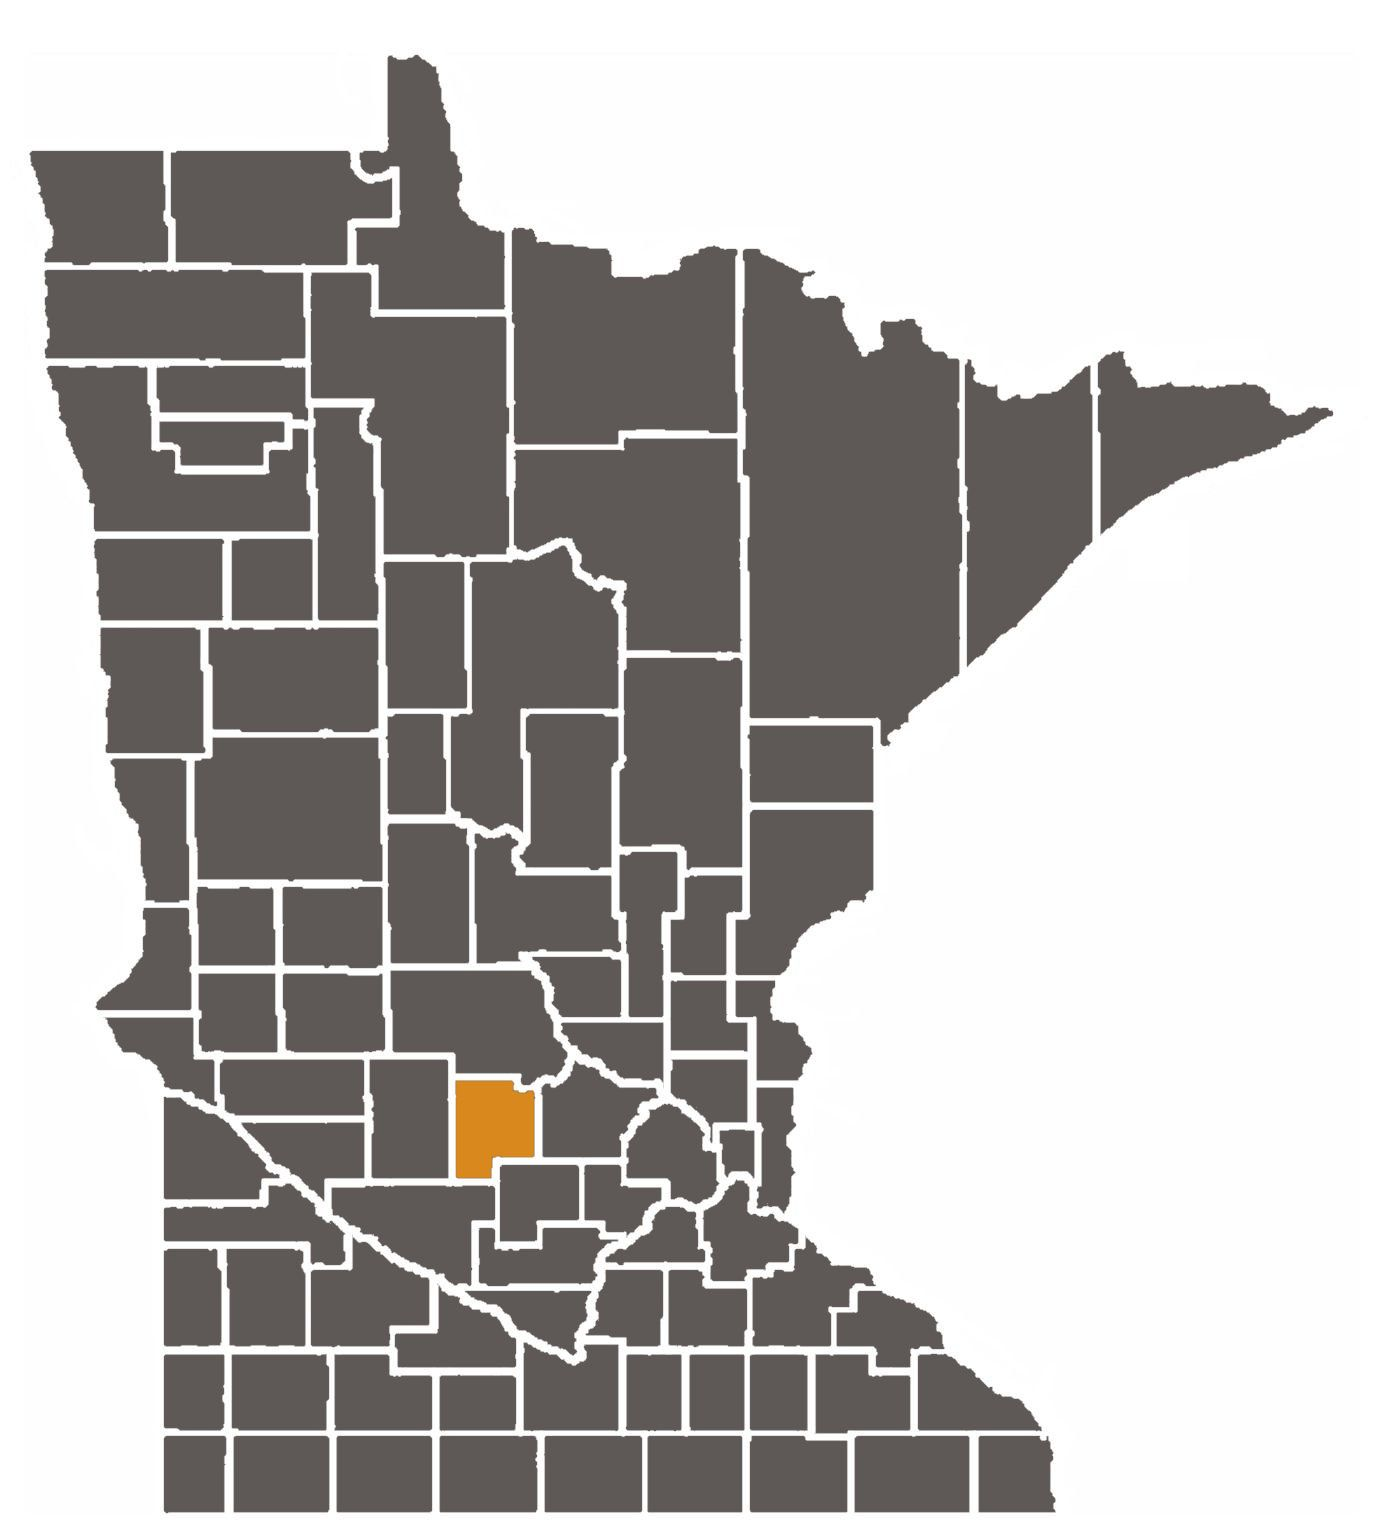 Minnesota map with Meeker County highlighted